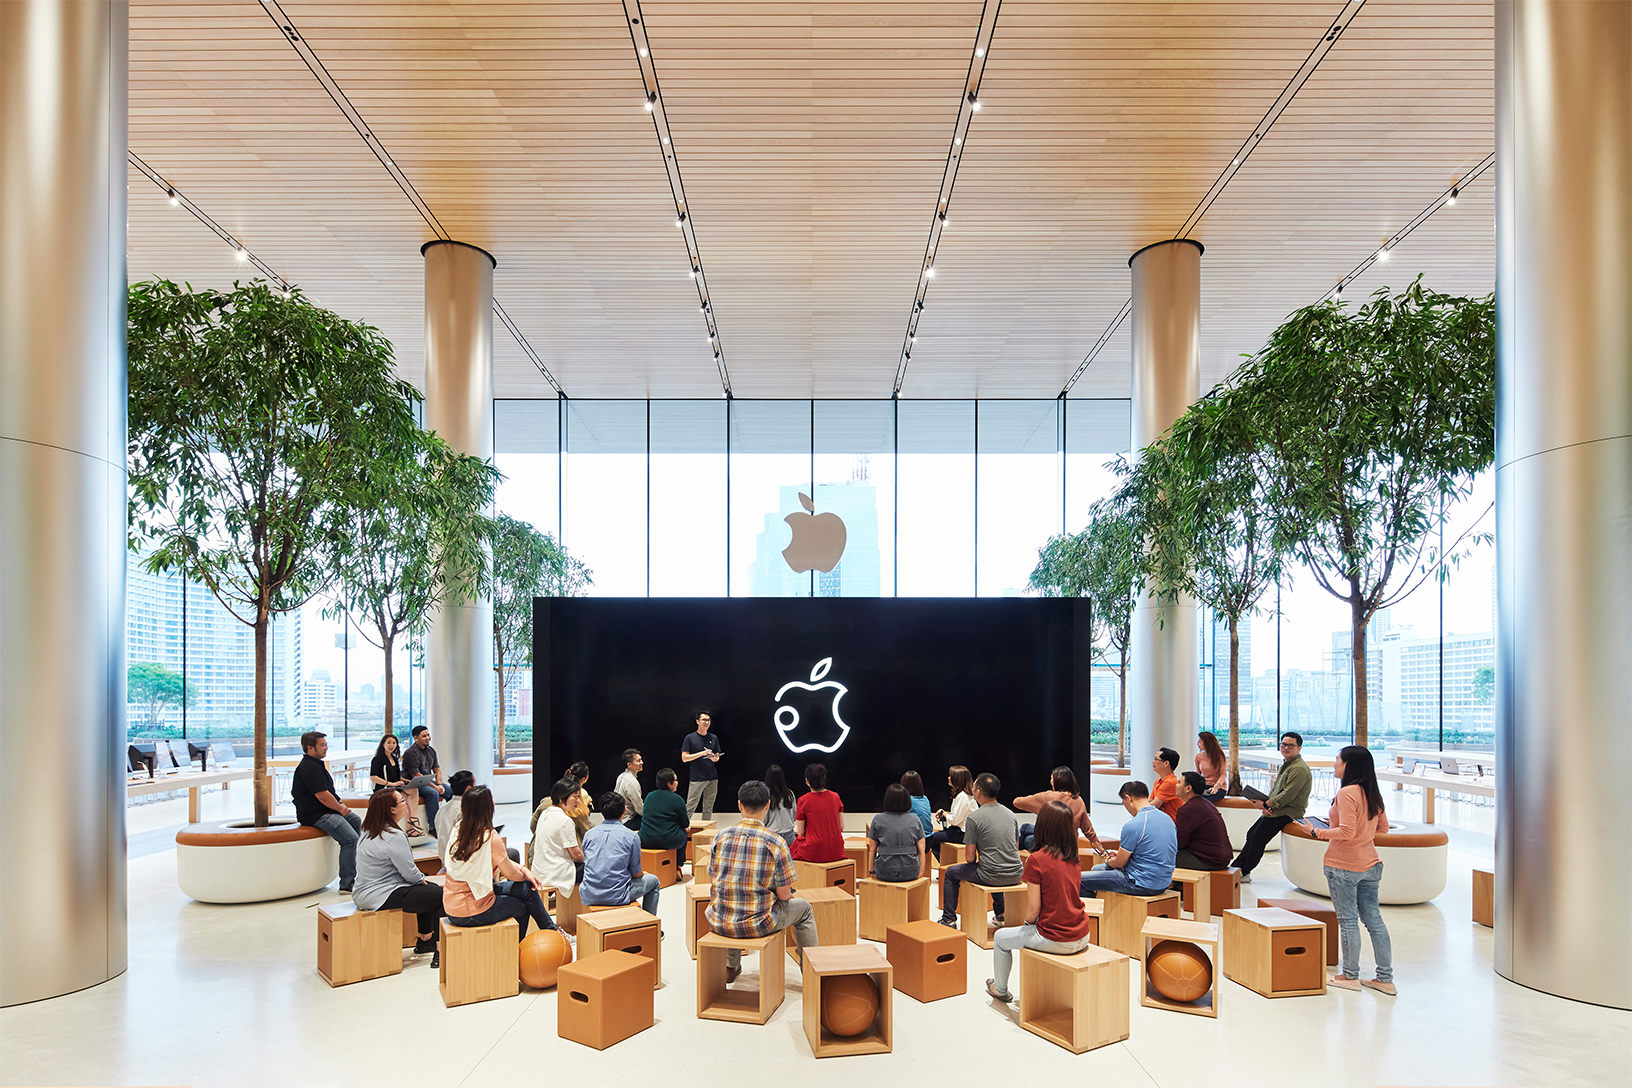 Apple Offers a Preview of Their First Thailand Store Ahead of Saturday's Grand Opening